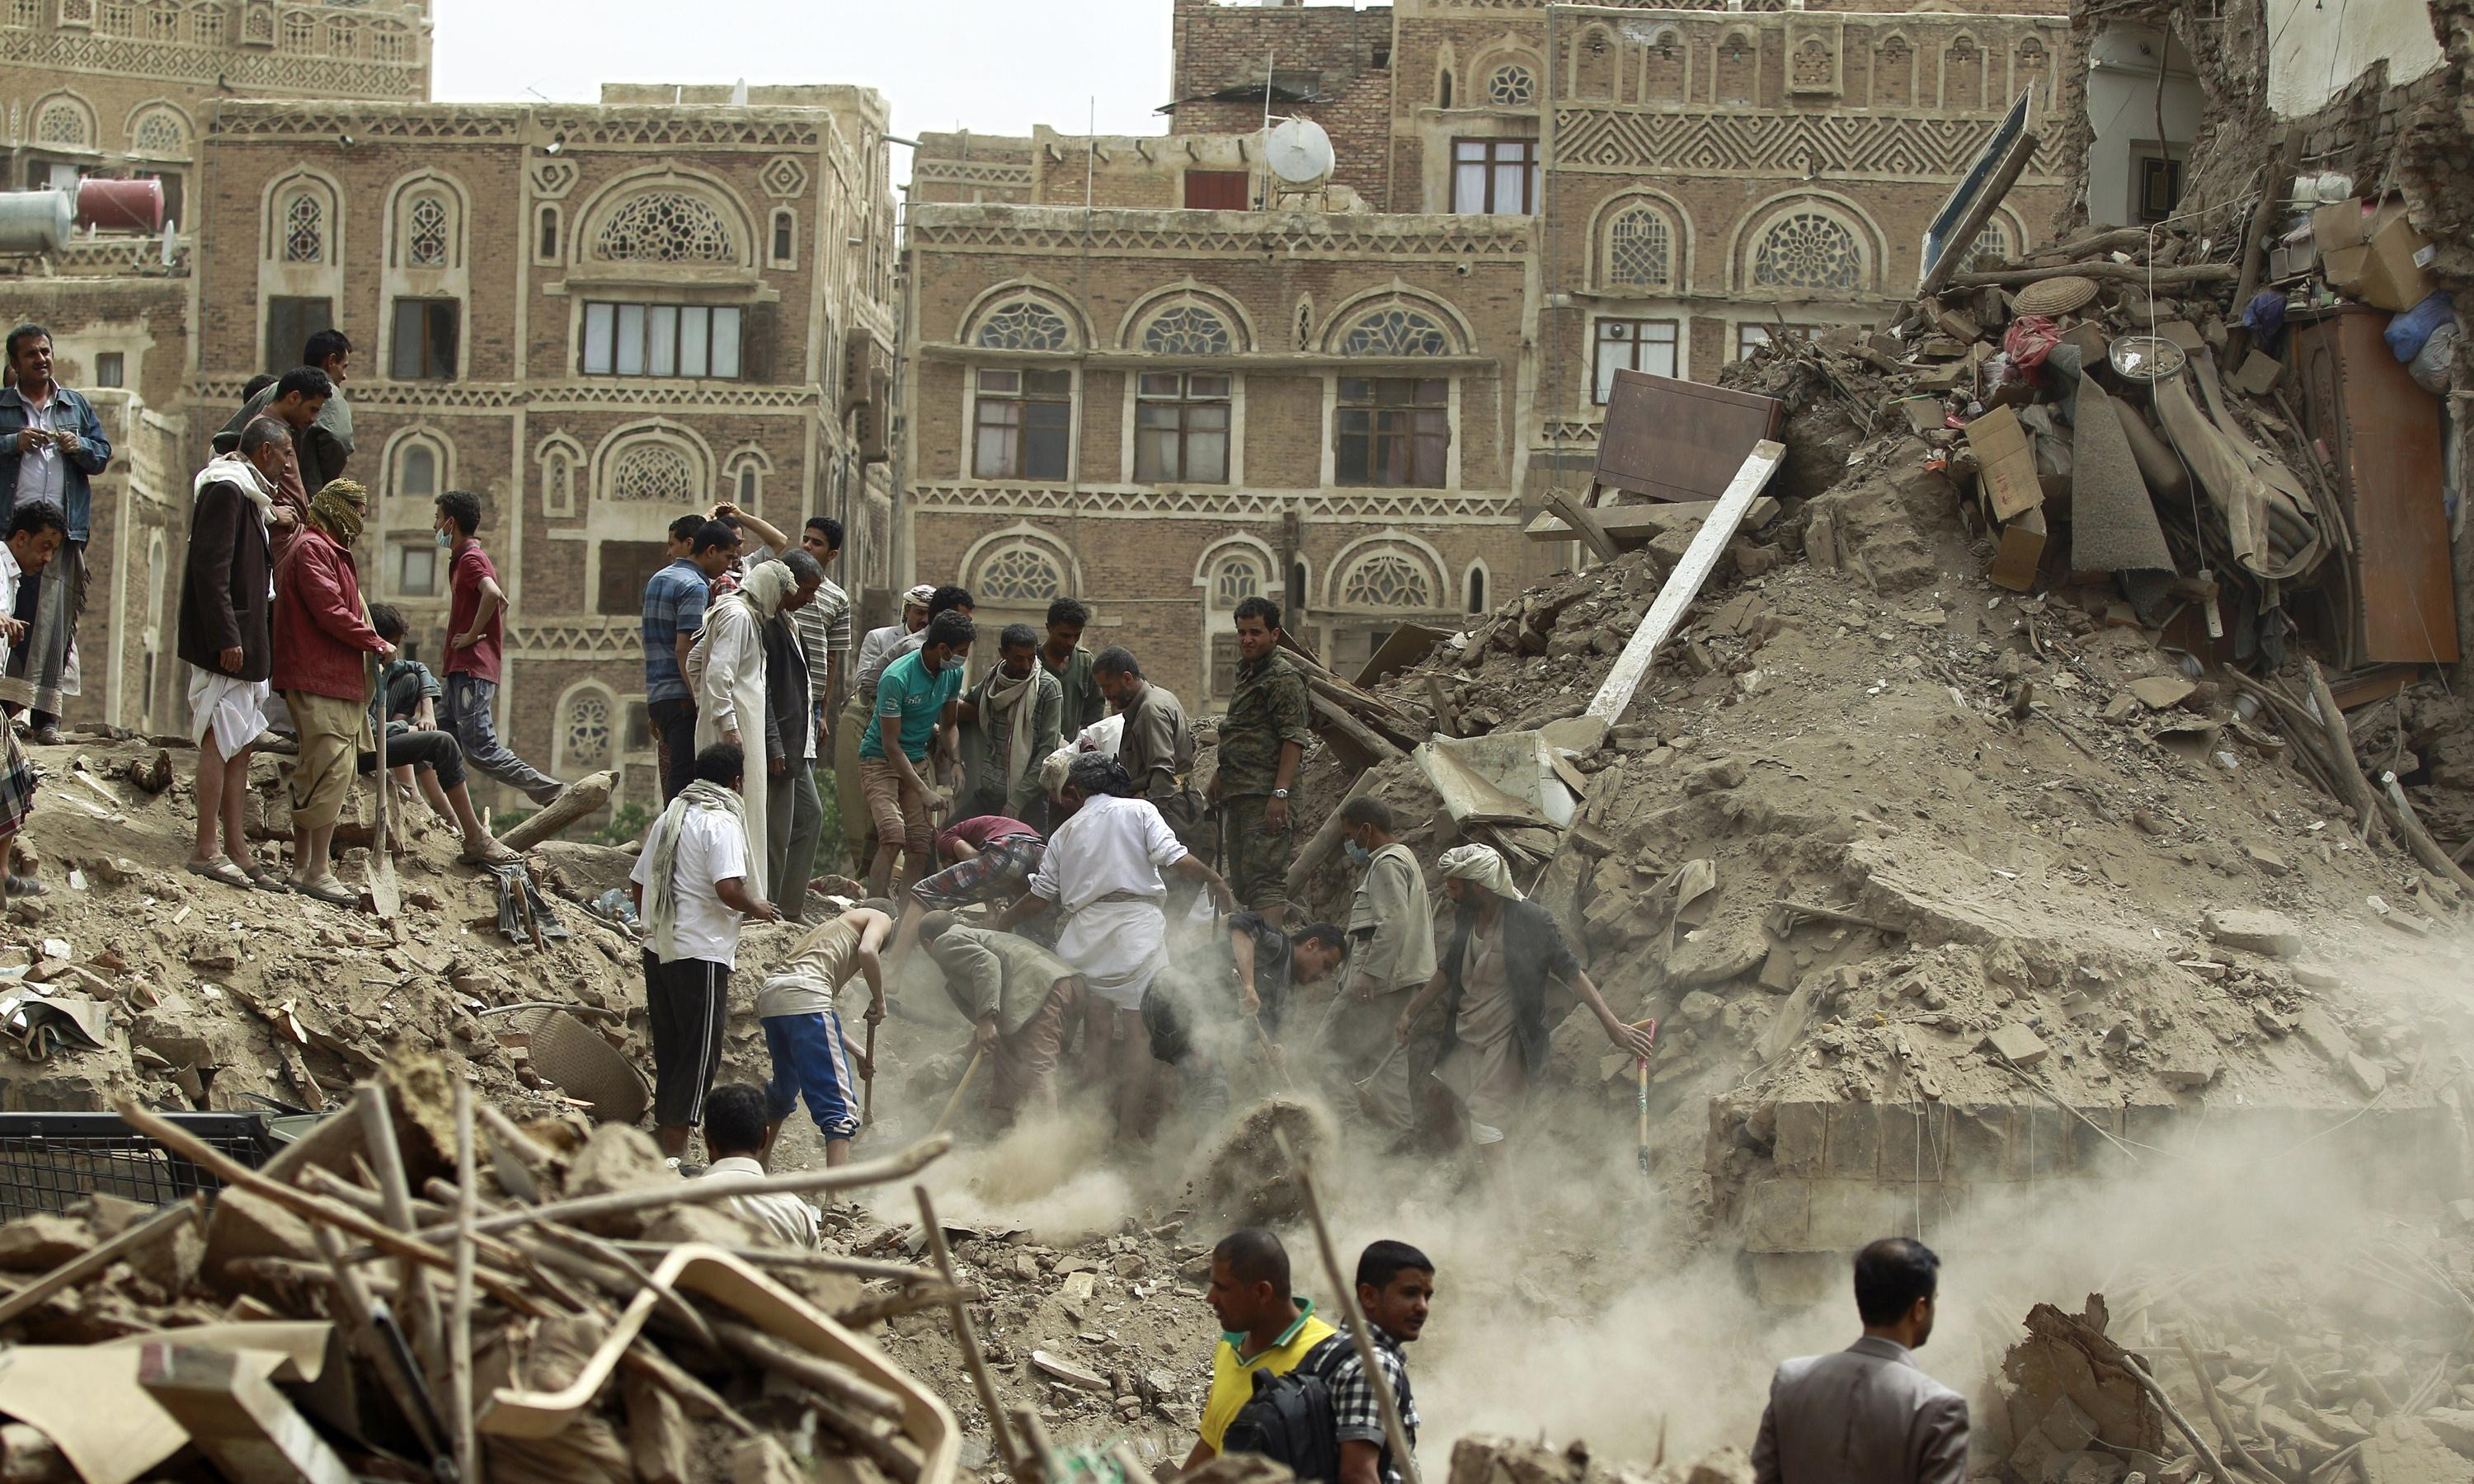 Yemen proves it: in western eyes, not all 'Notre Dames' are created equal